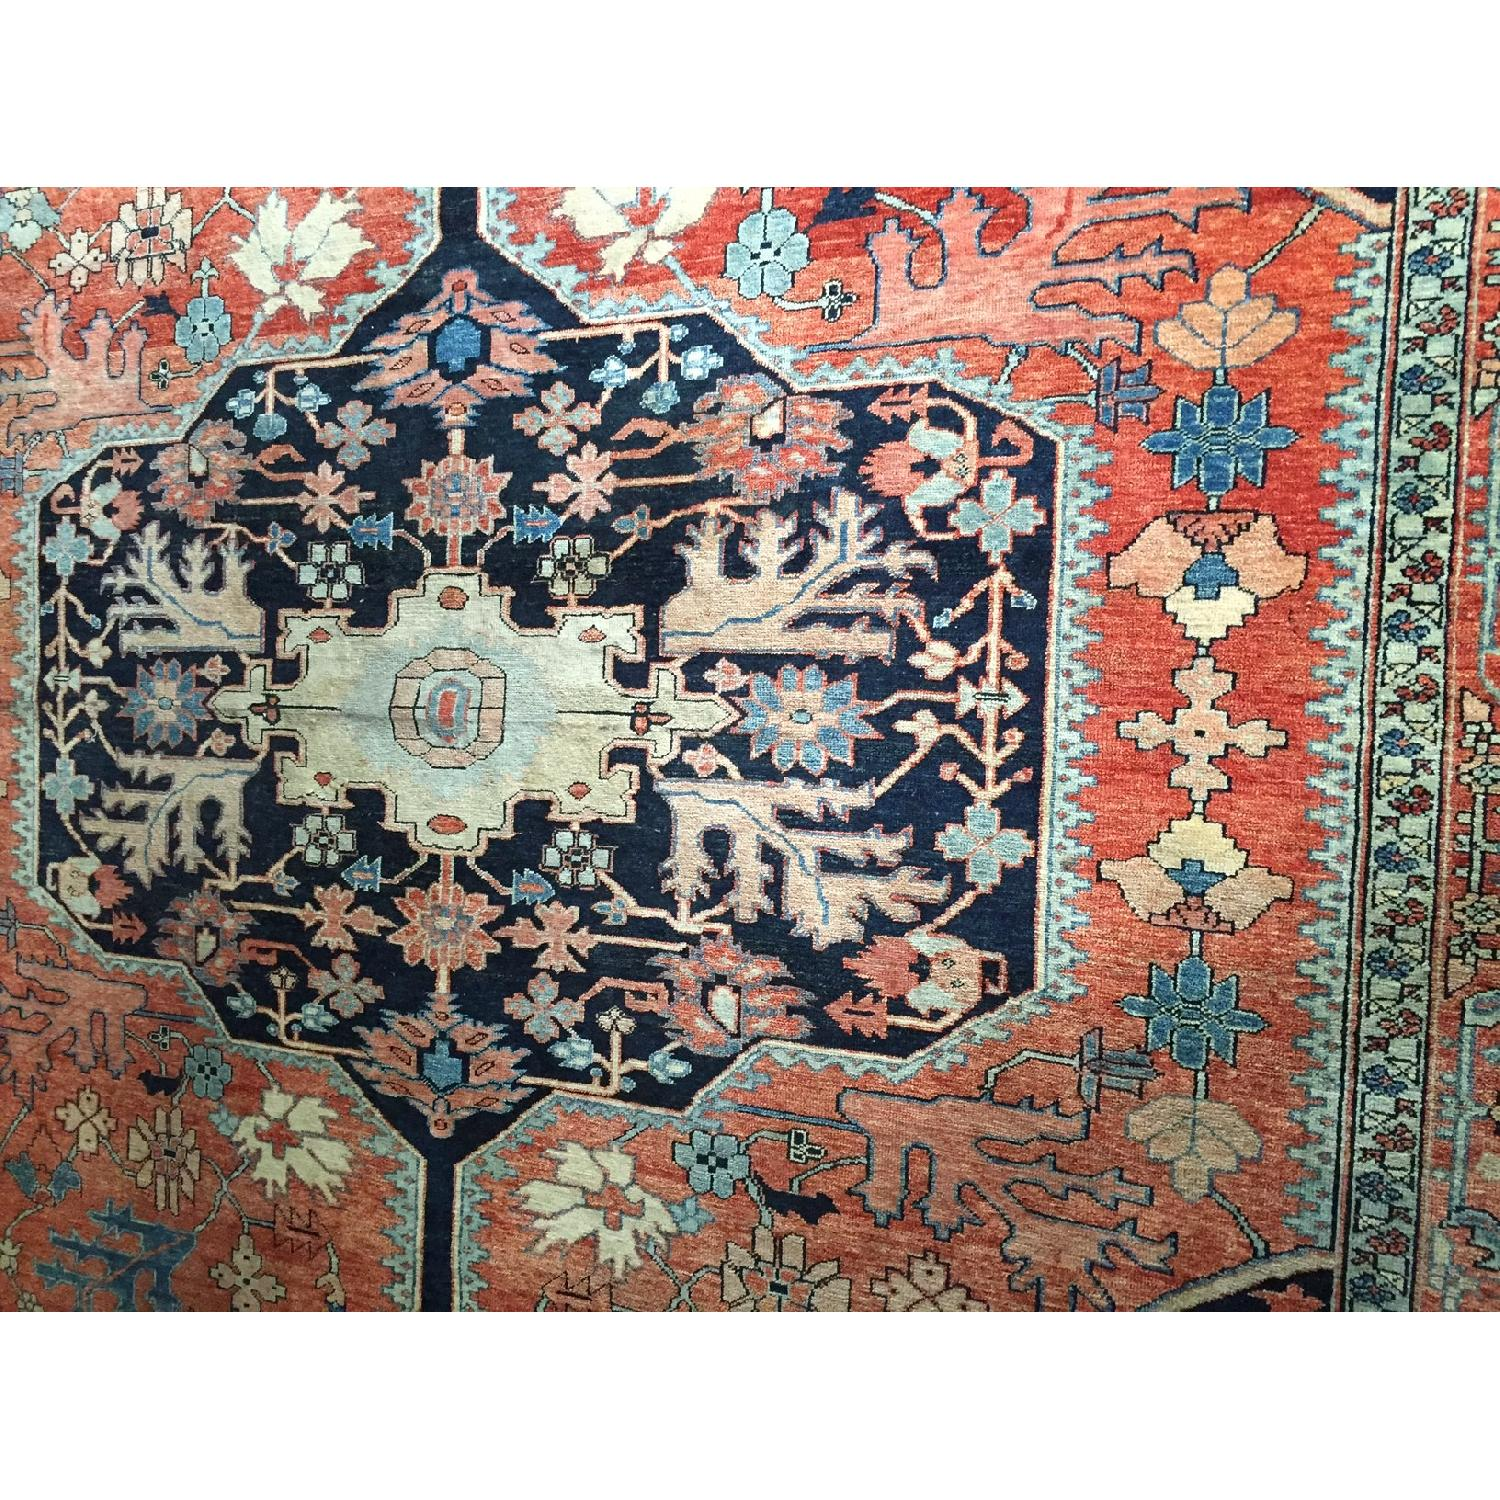 ABC Carpet & Home Woven Legends Turkish Rug - image-10